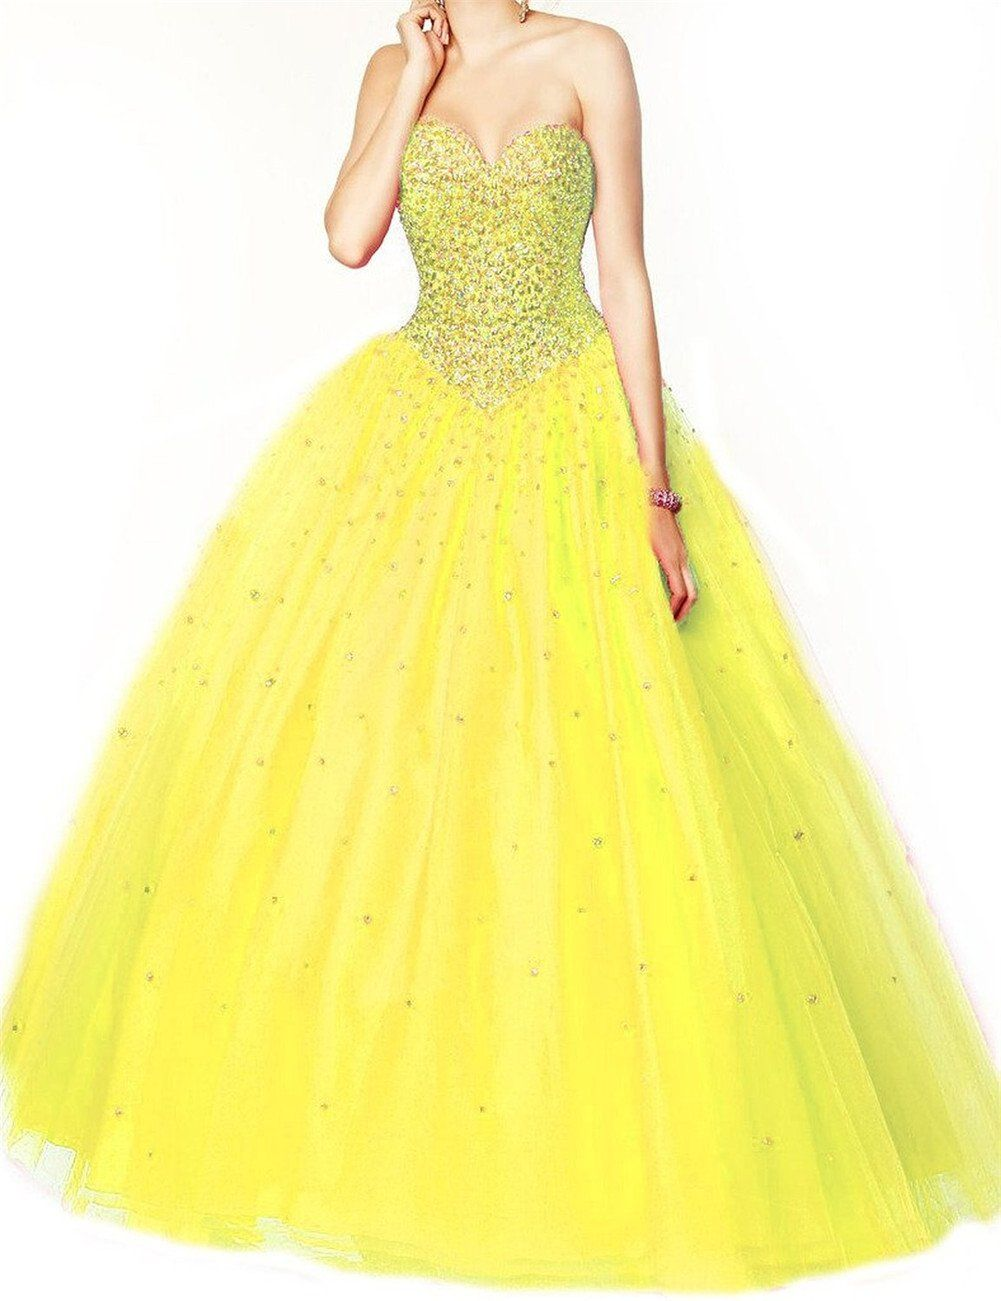 Onlinedress womenus elegant ball gown beaded long prom dress size